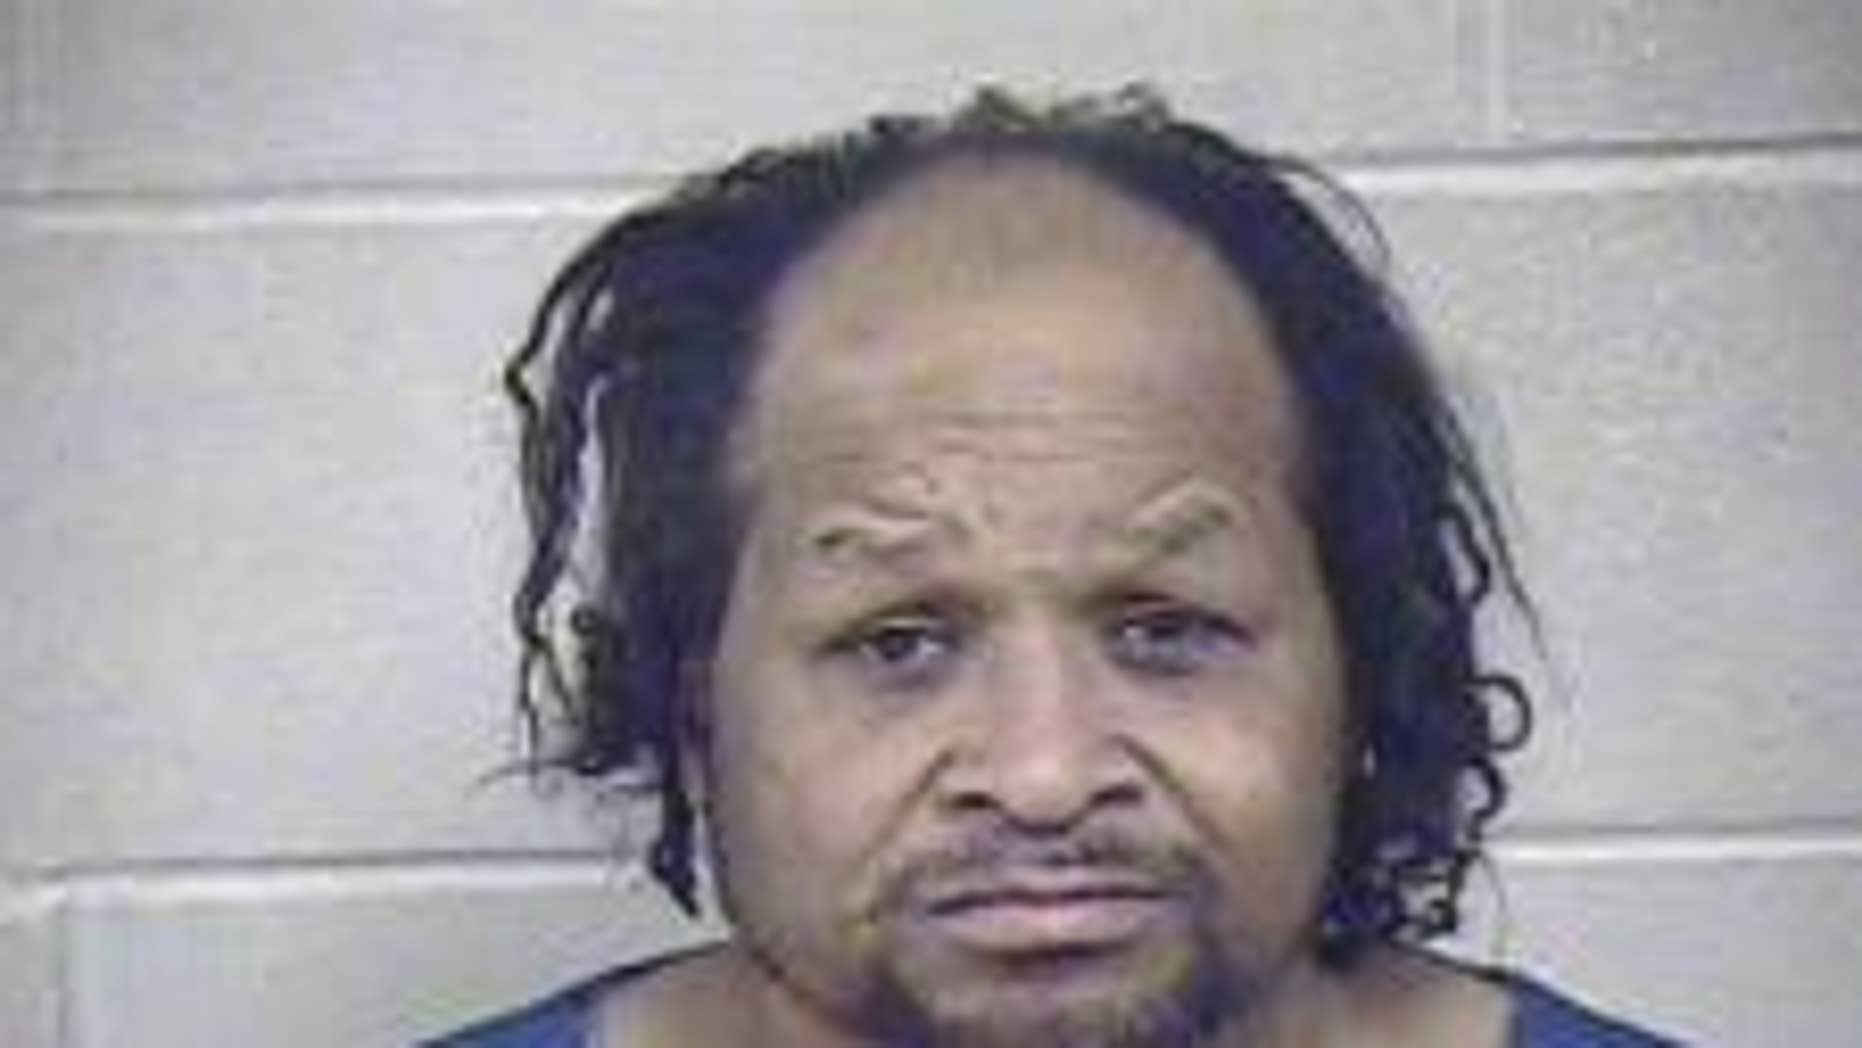 Larry J Oates, 55, is accused of hitting his mother with a skillet and choking her, officials said.